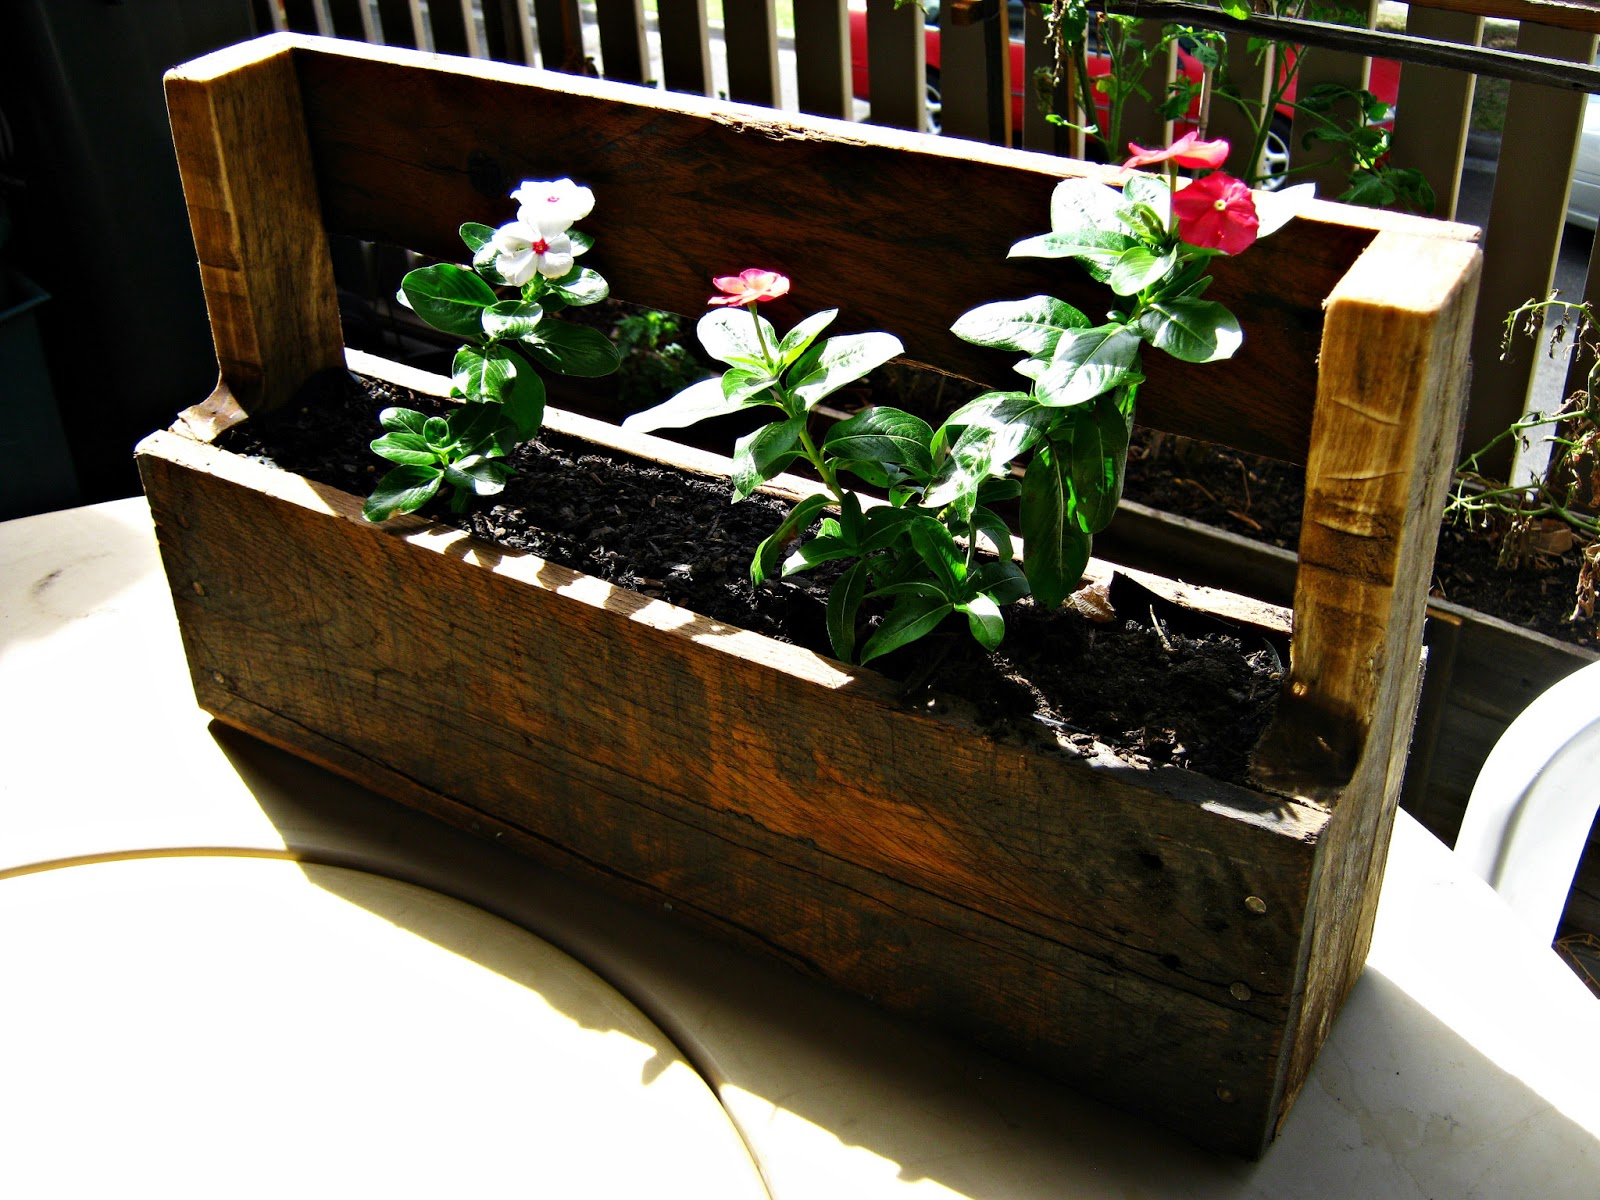 A Planter Box I Created While Ago It Is Just Section Of Wood Pallet With Base Nailed On Sanded And Stained Linseed Oil